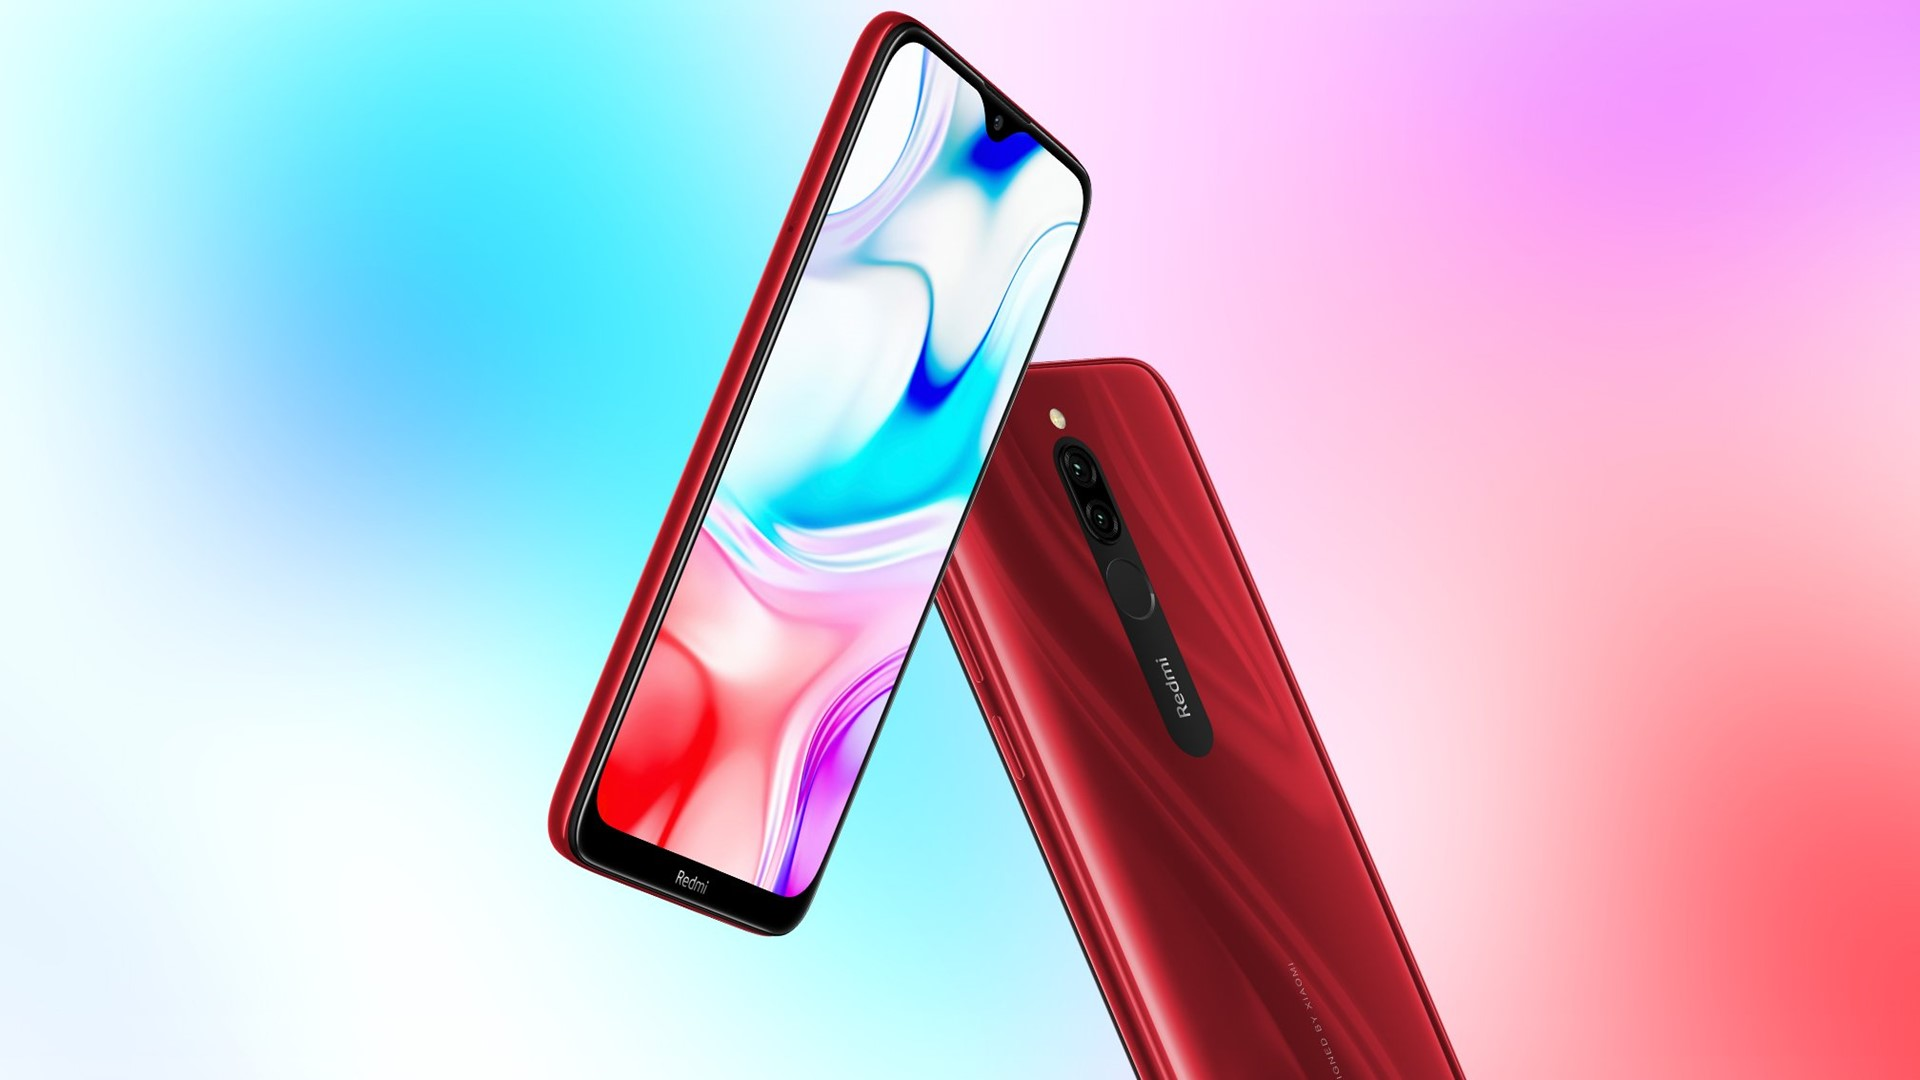 Xiaomi Redmi 8 launched in India at Rs 7,999 for the first 5 million buyers  | TechRadar